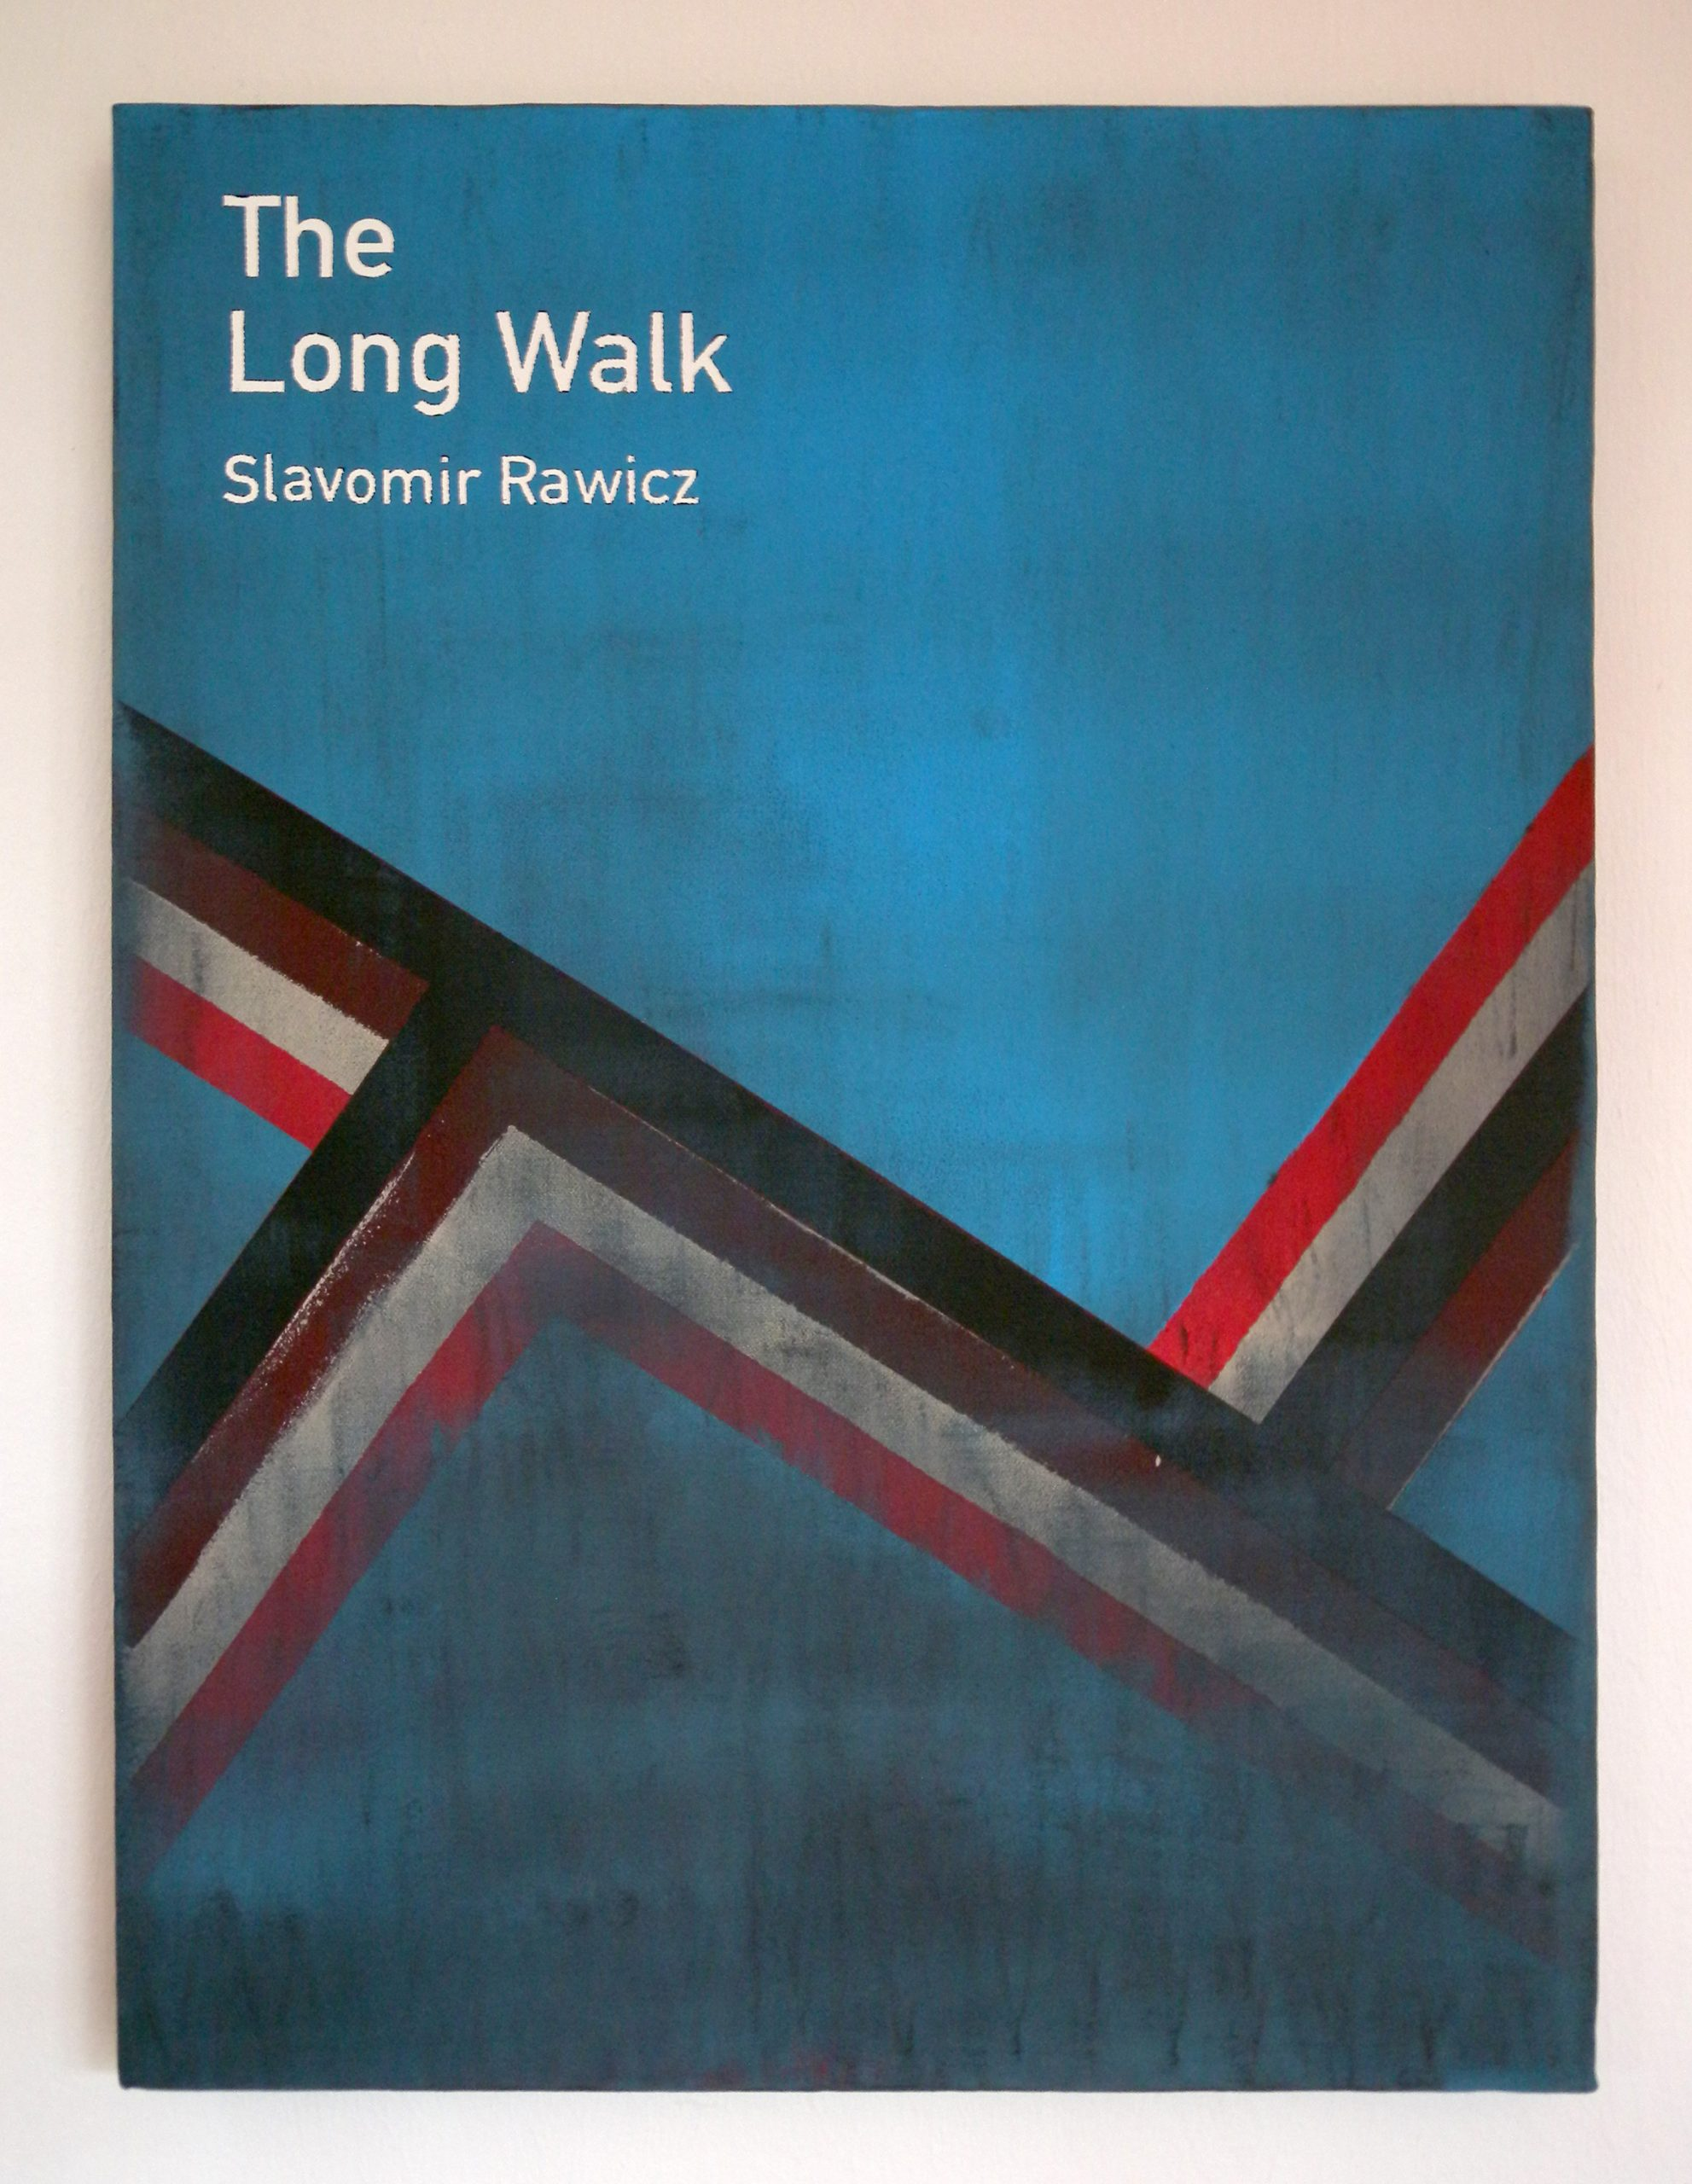 The Long Walk / Slavomir Rawicz